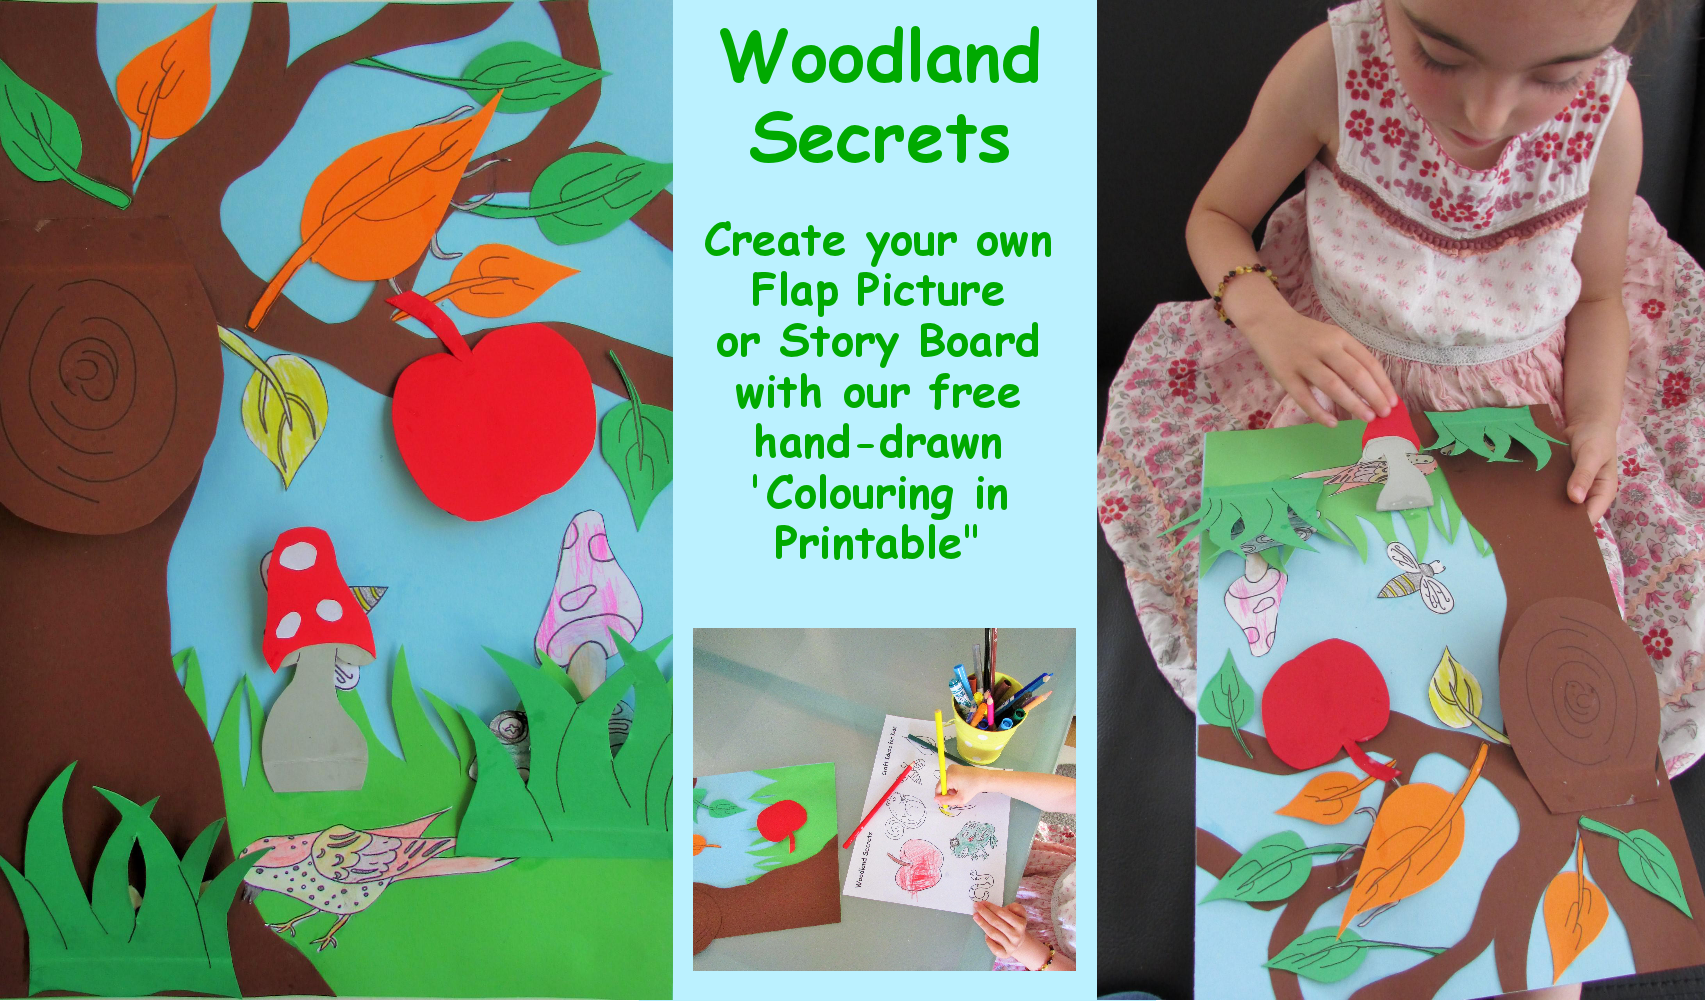 Craft Ideas for Kids - Woodland Secrets